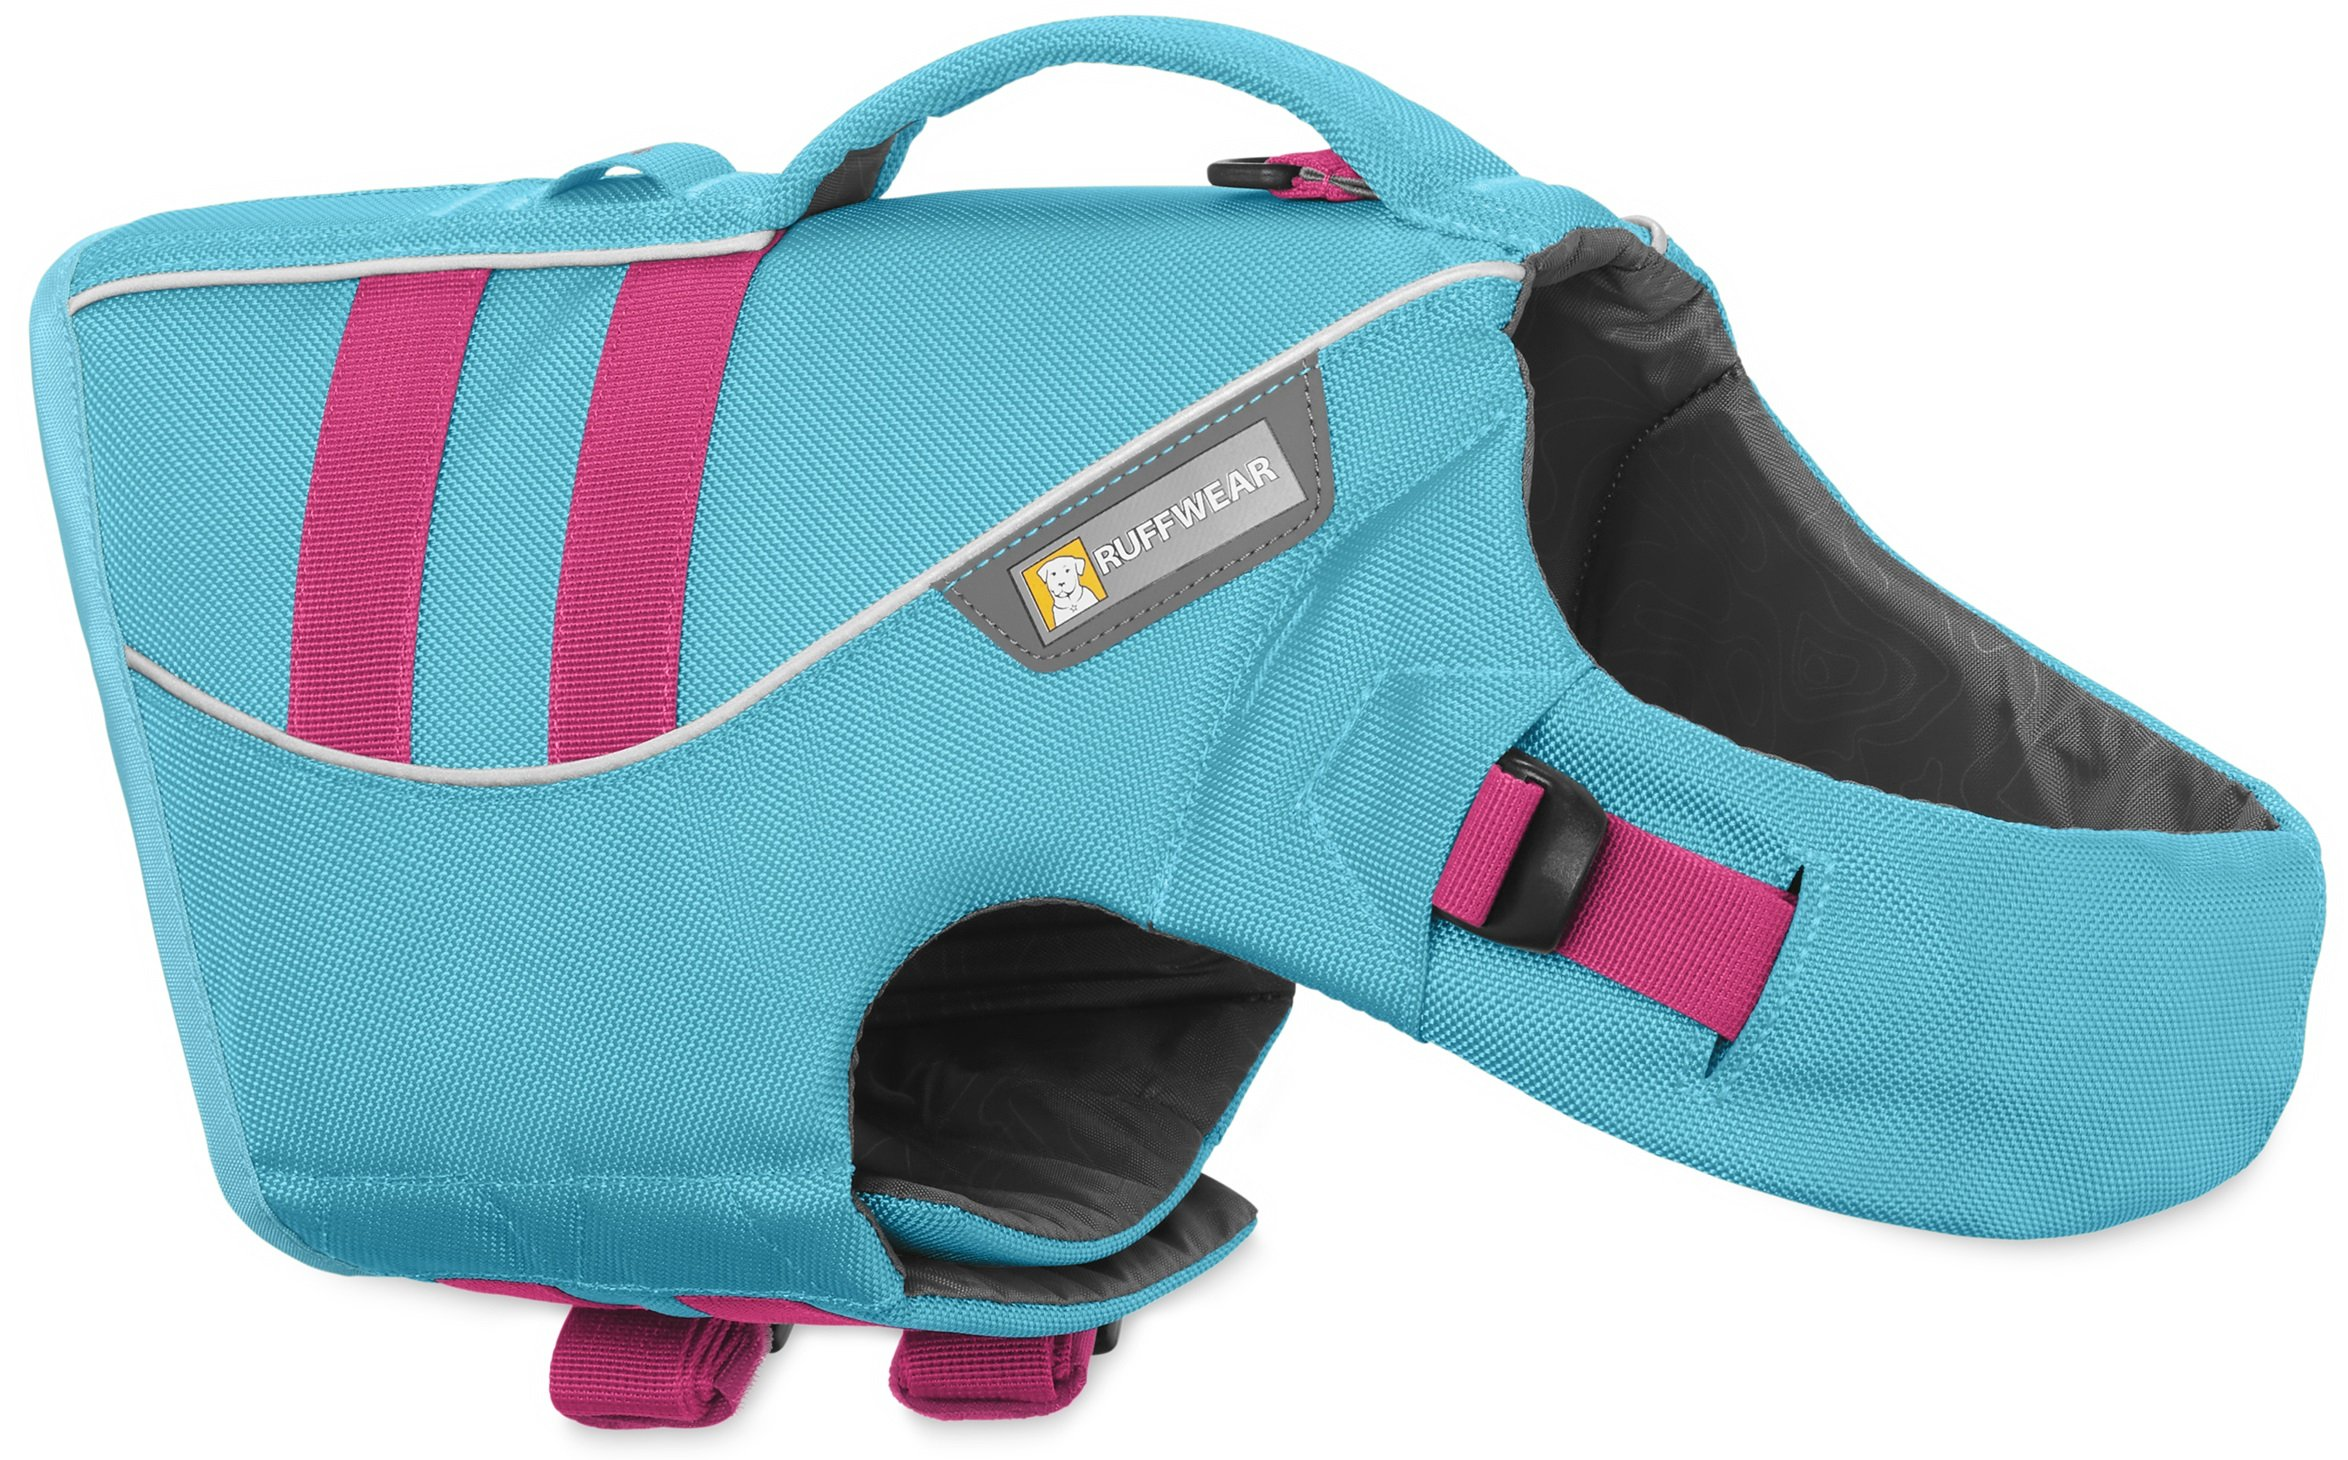 RUFFWEAR DOG FLOAT COAT ♦ NEW PREMIUM LIFE JACKET BUOYANT SECURE REFLECTIVE ♦ ALL COLORS AND SIZES (XL, Blue Atoll)